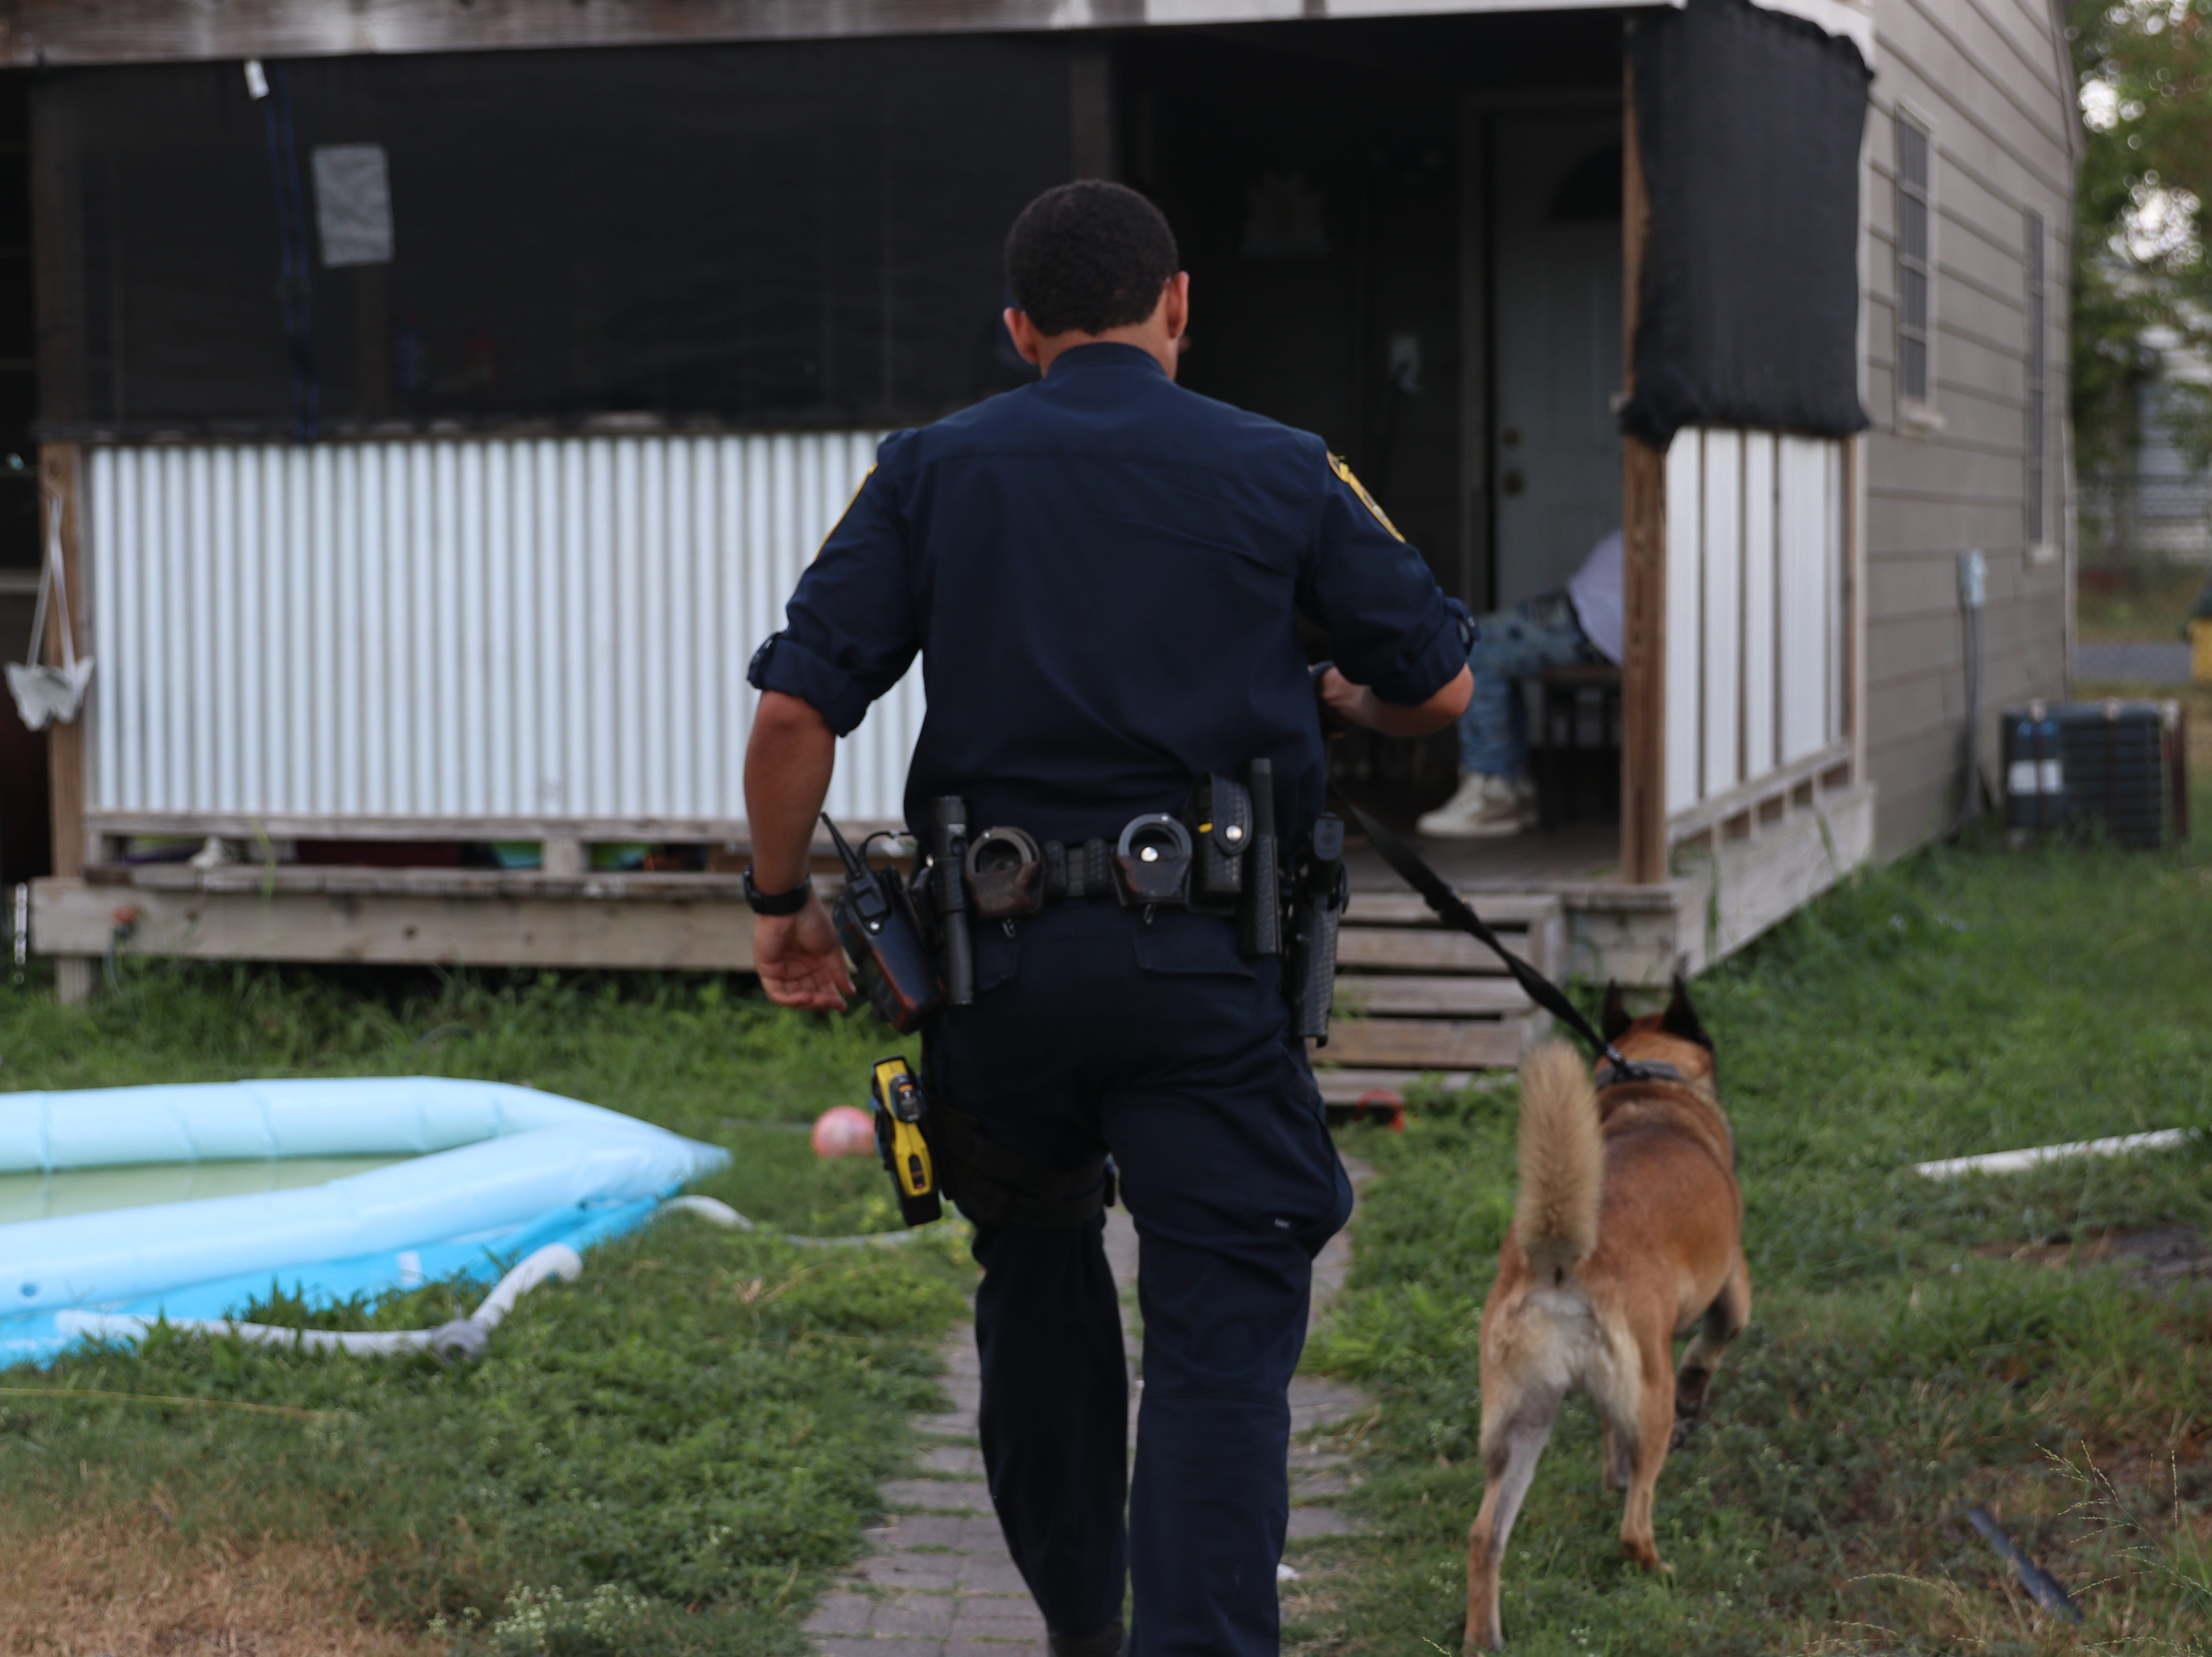 A K-9 unit going into the home of an individual who was arrested during a heroin-related warrant roundup.